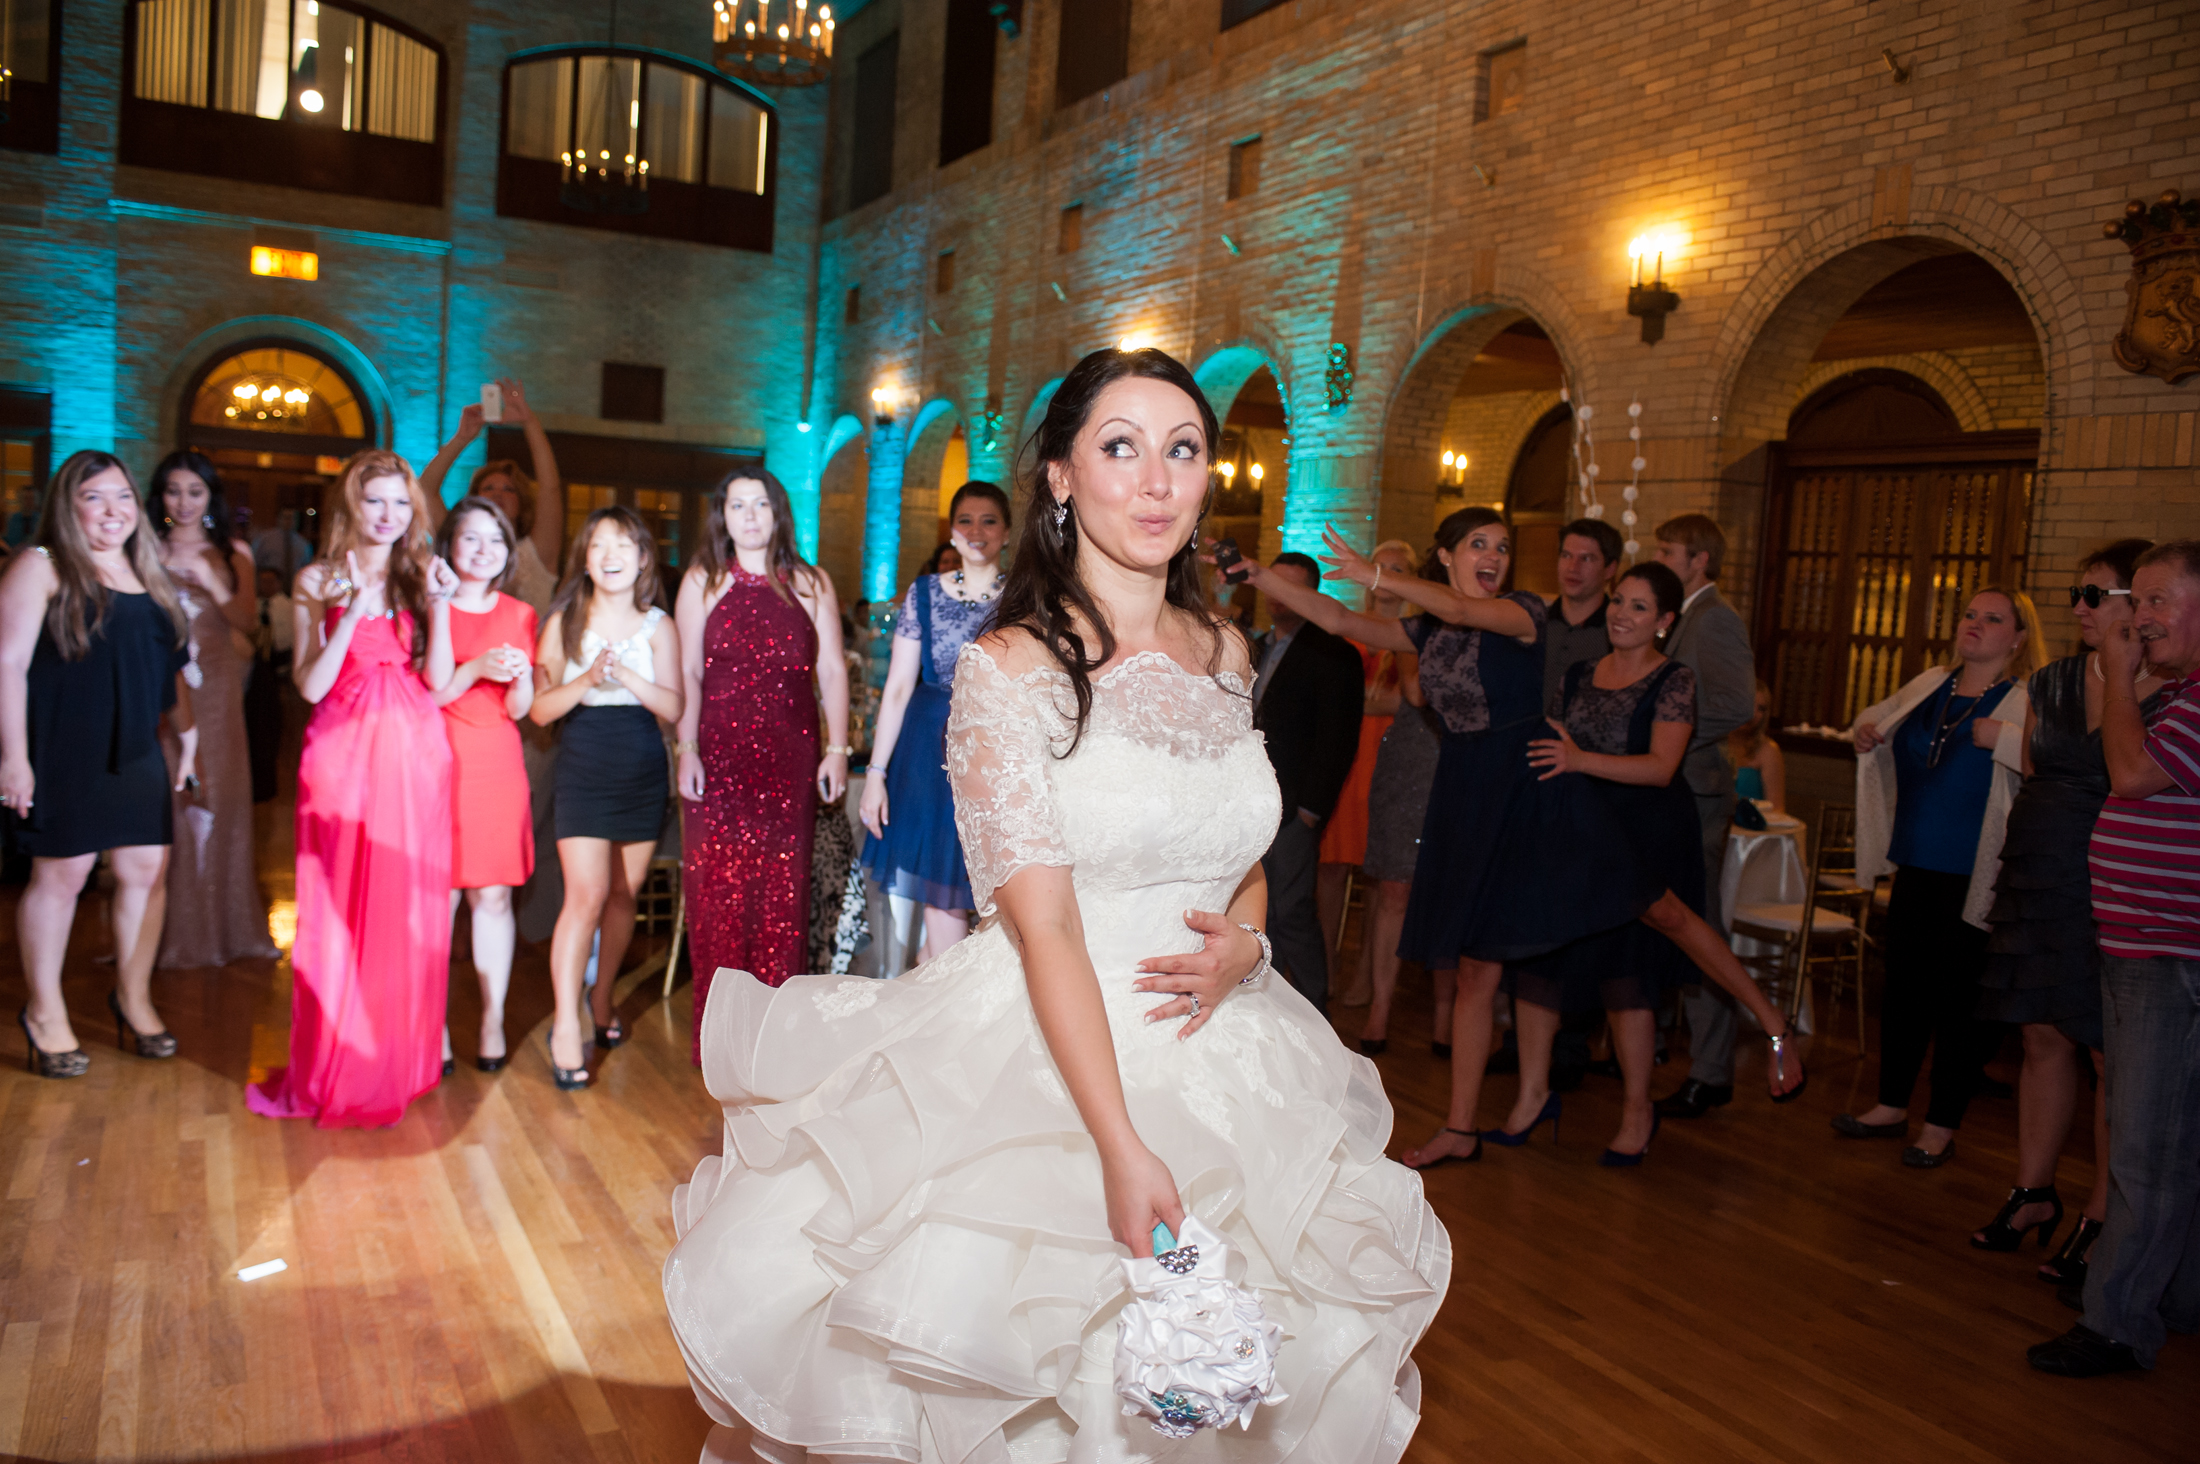 Russian Wedding With A Classic Tiffany Flair The Big Fat Jewish